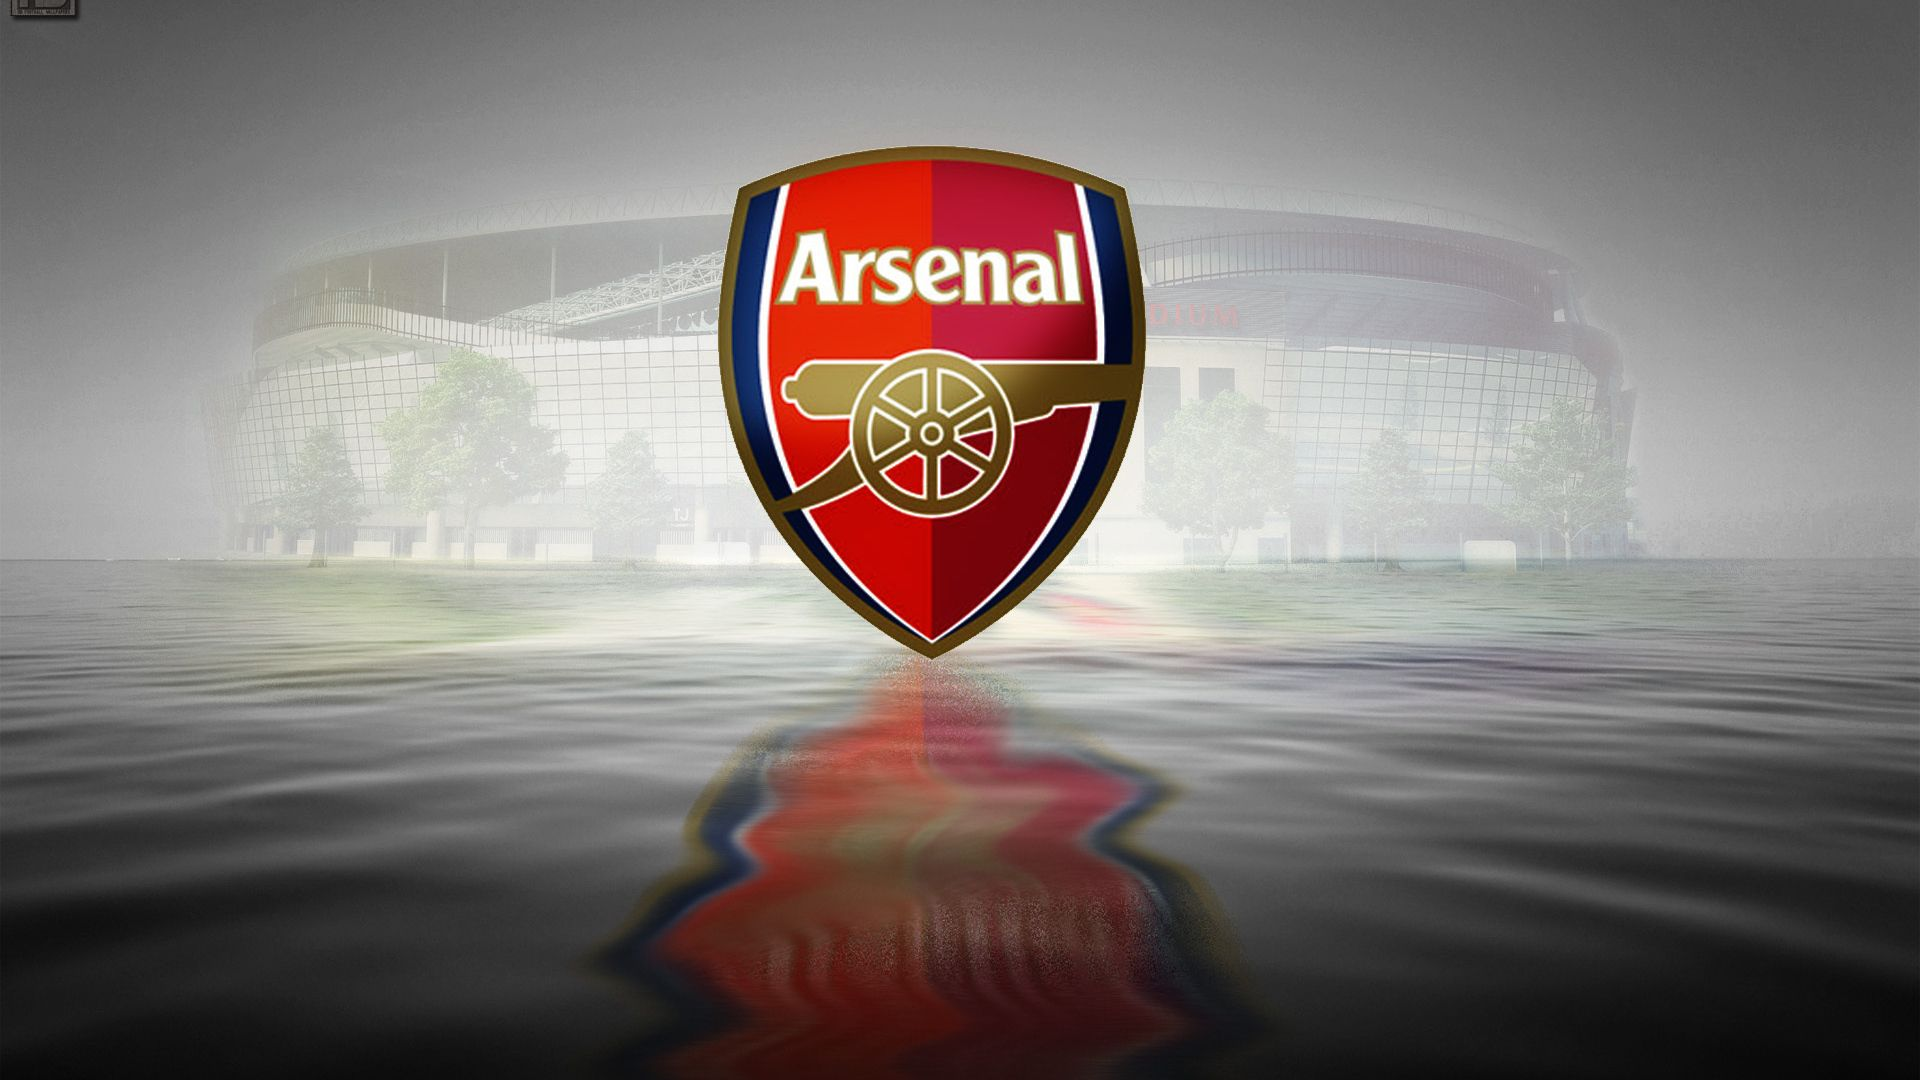 Famous Arsenal Football Club